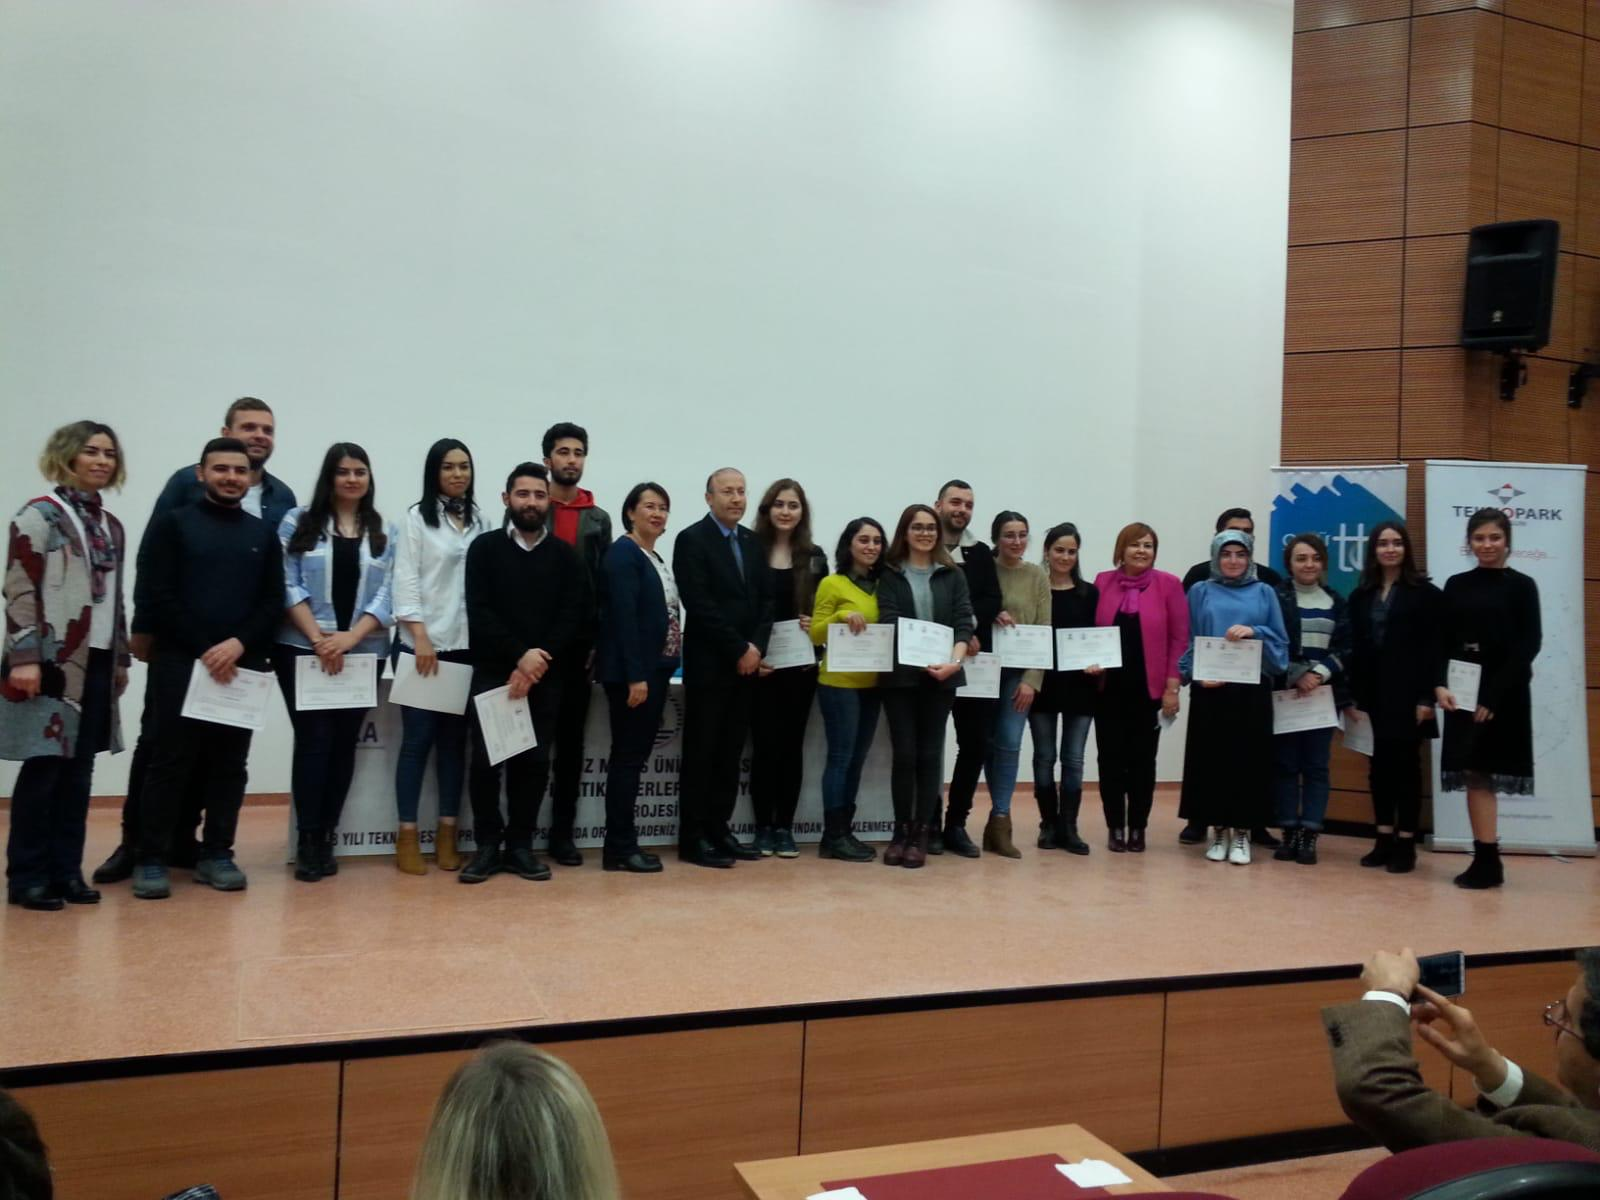 http://www.omu.edu.tr/sites/default/files/files/the_first_zero-waste_leaders_of_omu_receive_their_certificates/8cabe019-be75-475b-afb6-58e5a9d1f395.jpg